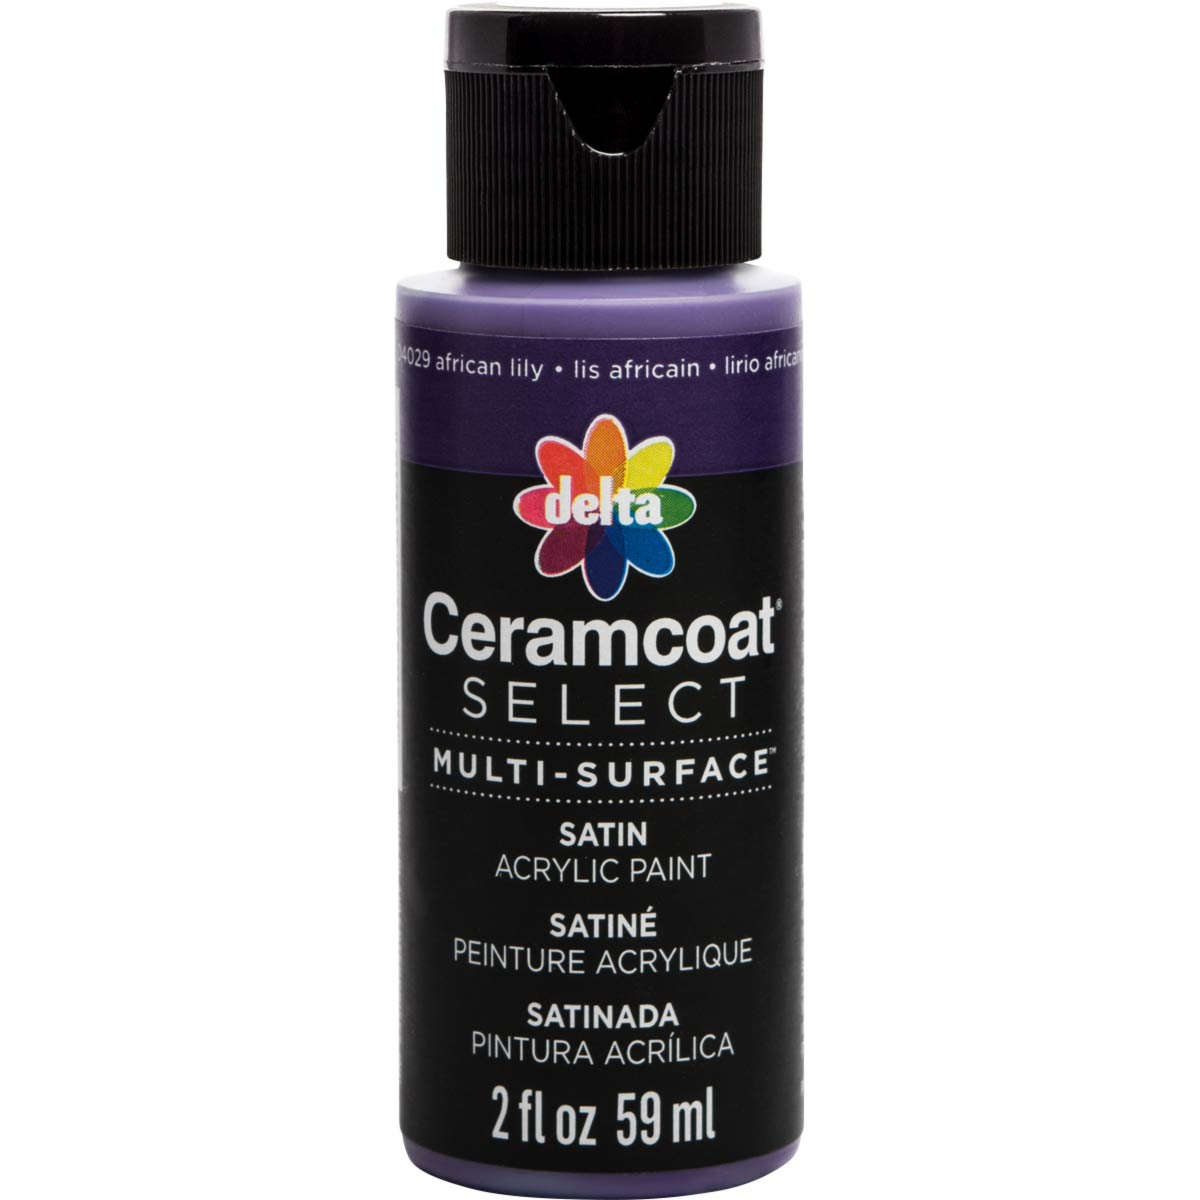 Delta Ceramcoat ® Select Multi-Surface Acrylic Paint - Satin - African Lily, 2 oz. - 04029